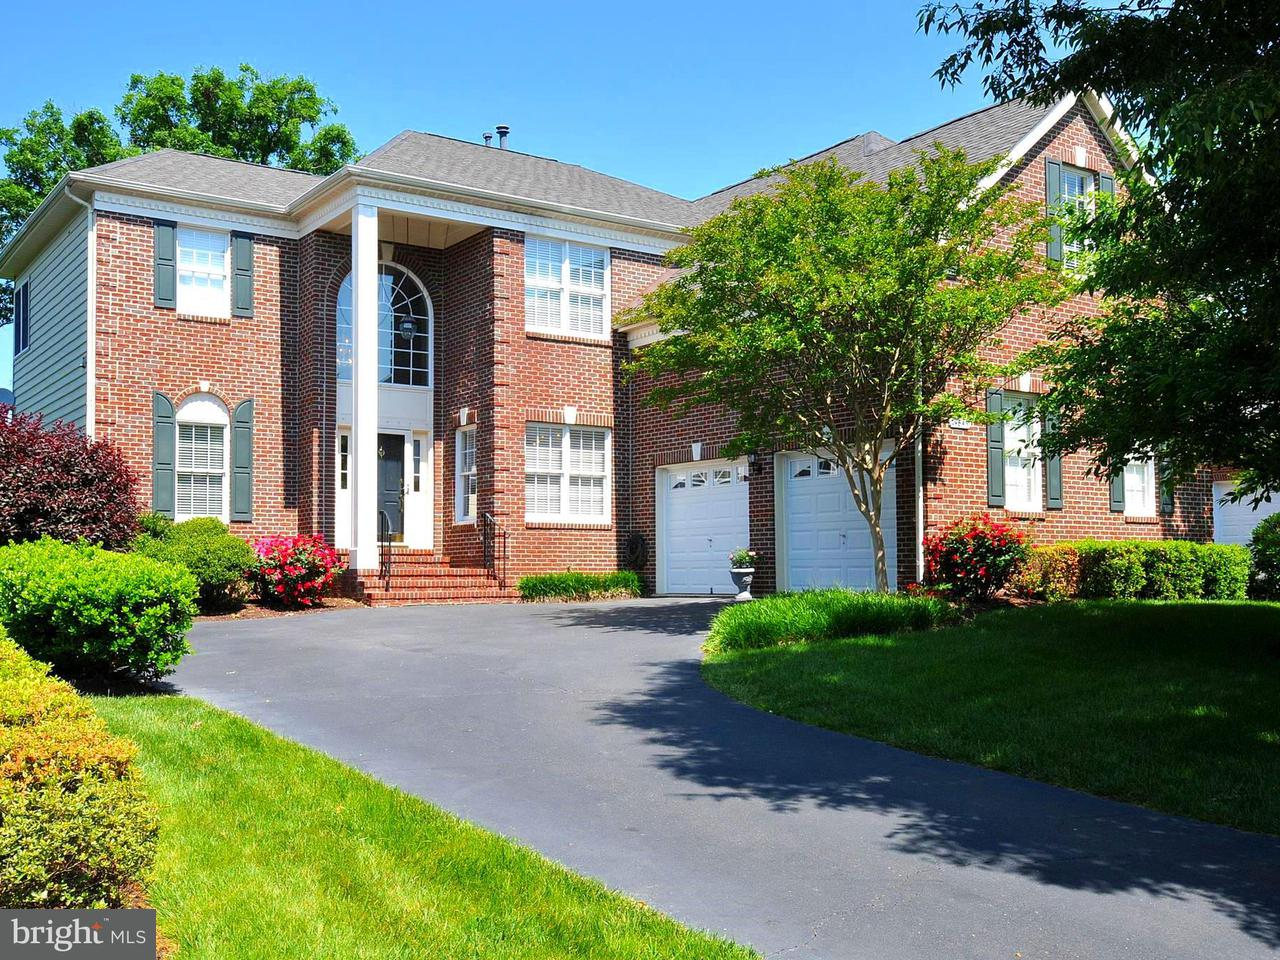 Single Family Home for Sale at 19849 BETHPAGE Court 19849 BETHPAGE Court Ashburn, Virginia 20147 United States